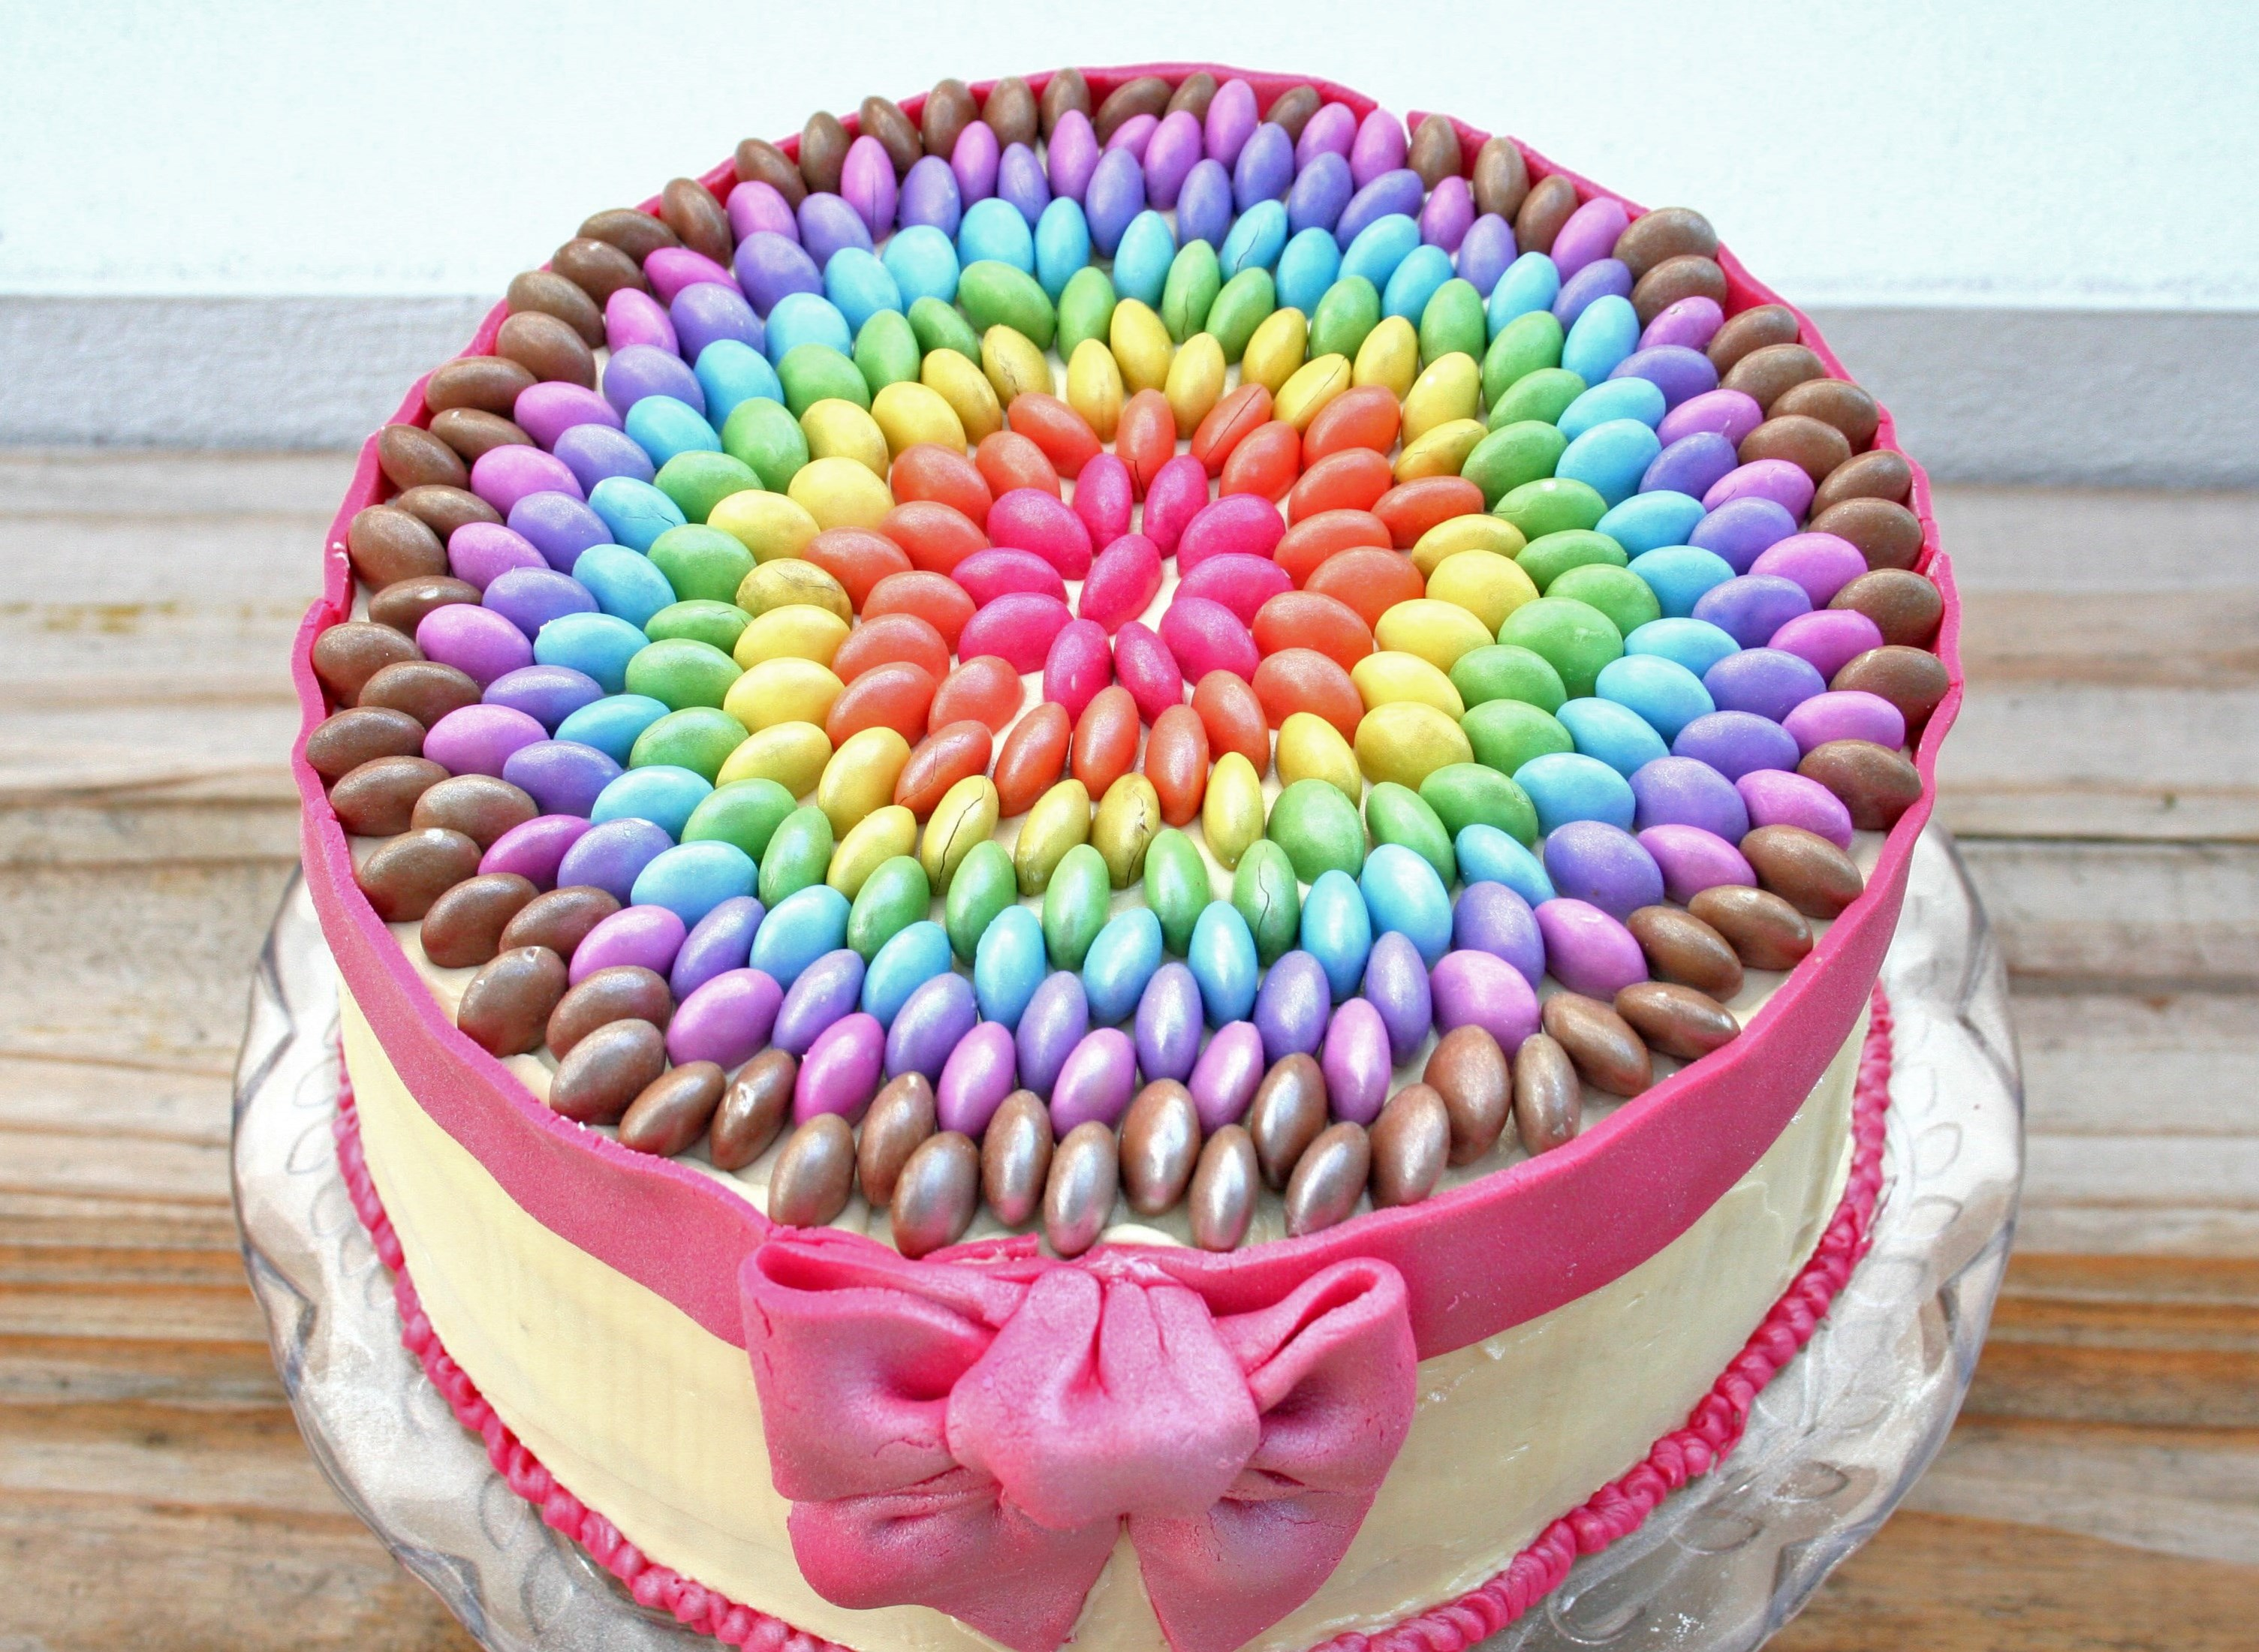 Cake Decorated With Smarties